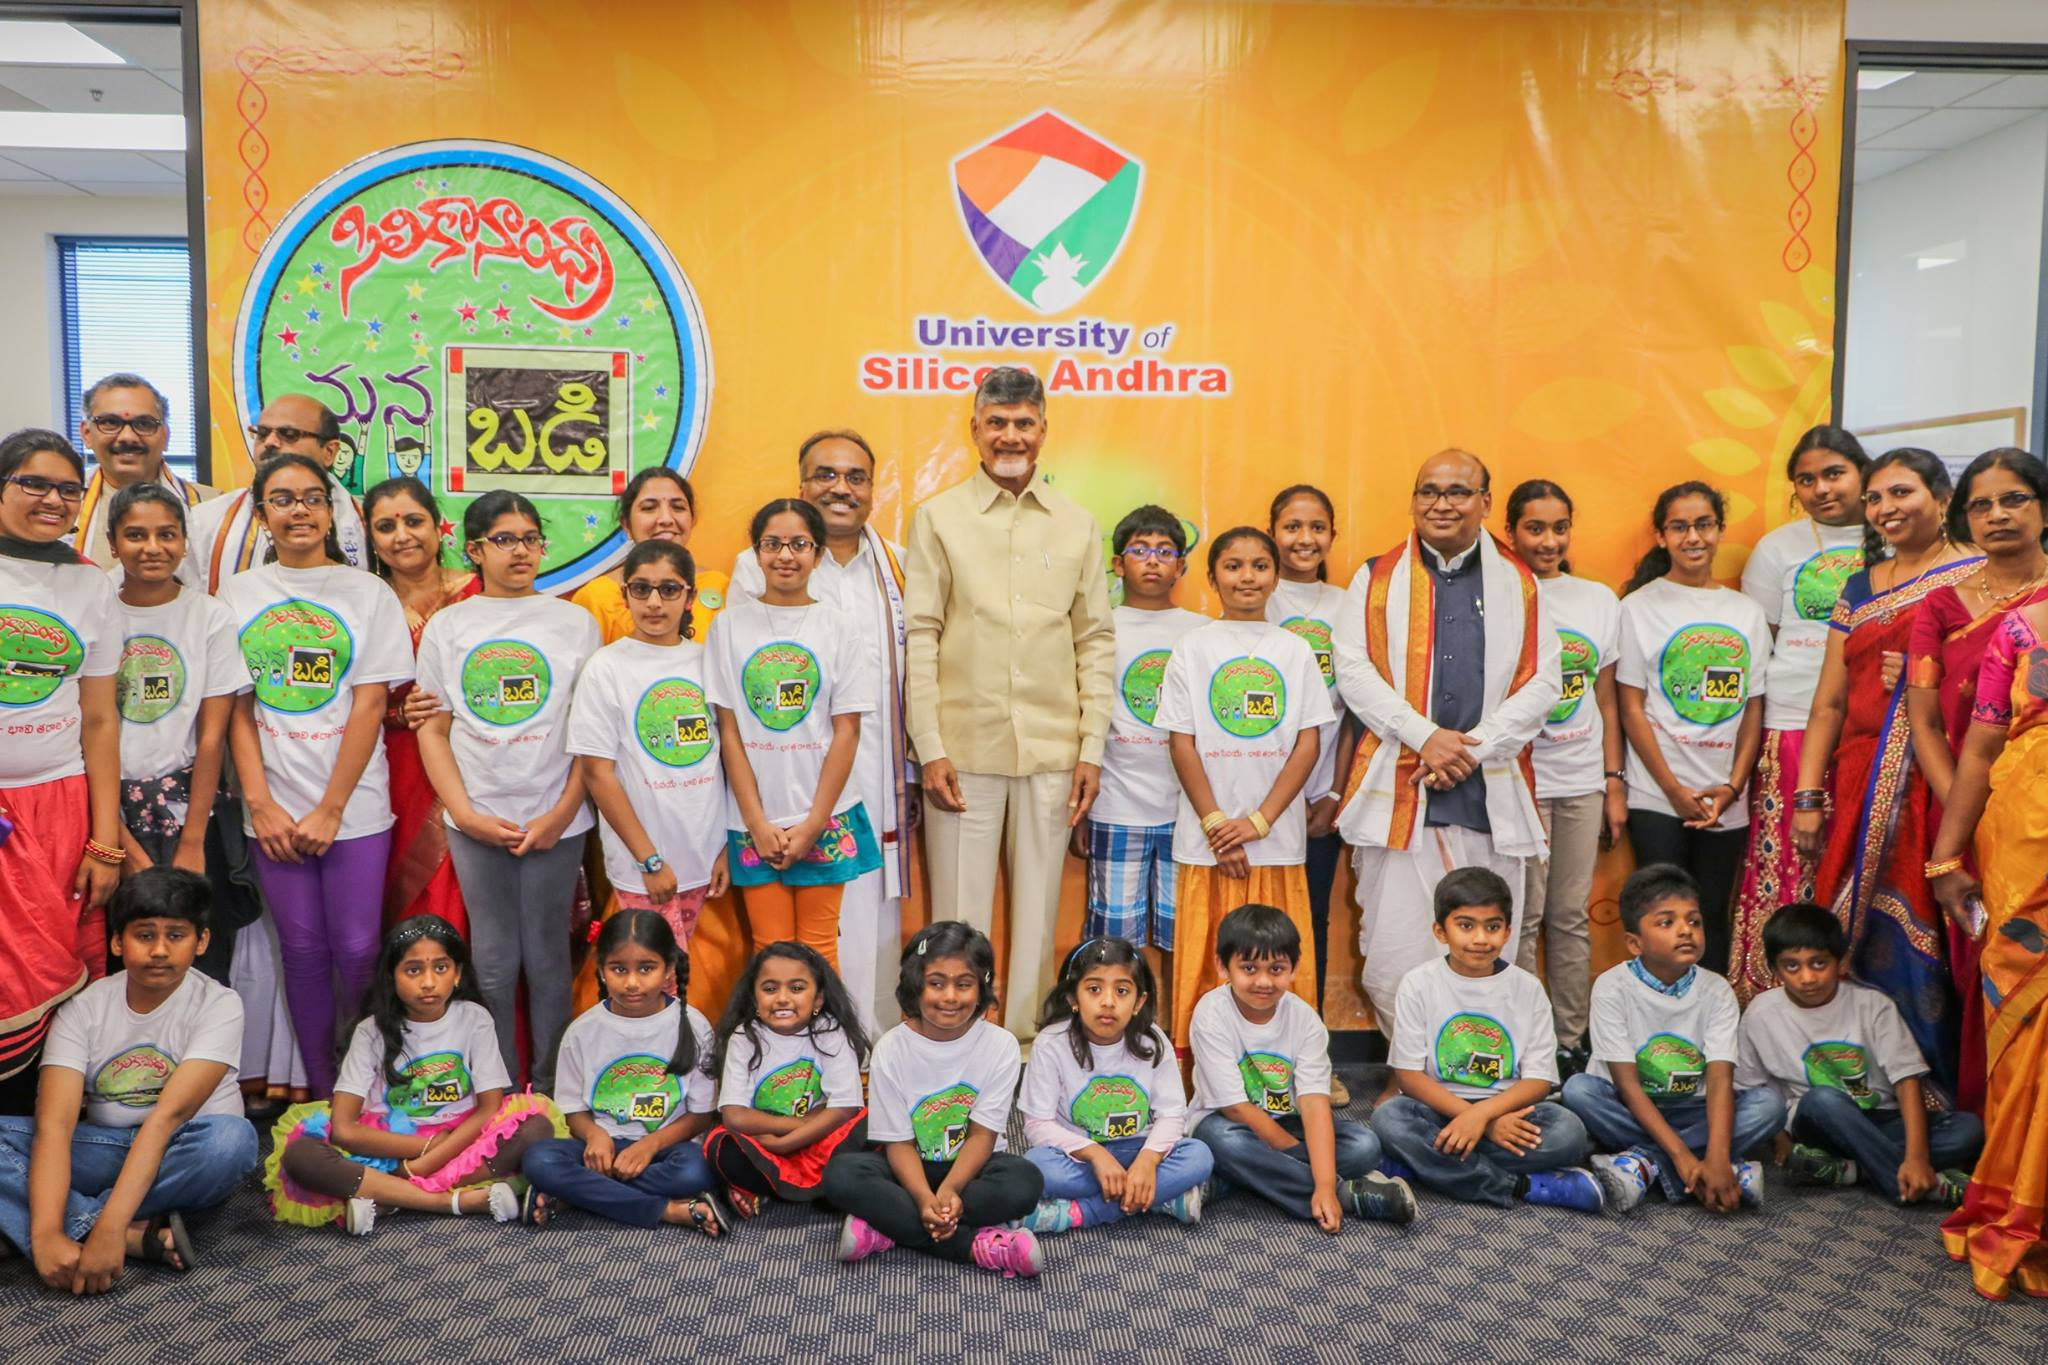 Andhra Pradesh chief minister N Chandrababu Naidu at Silicon Andhra University in Milpitas, California meeting people from Telugu community.